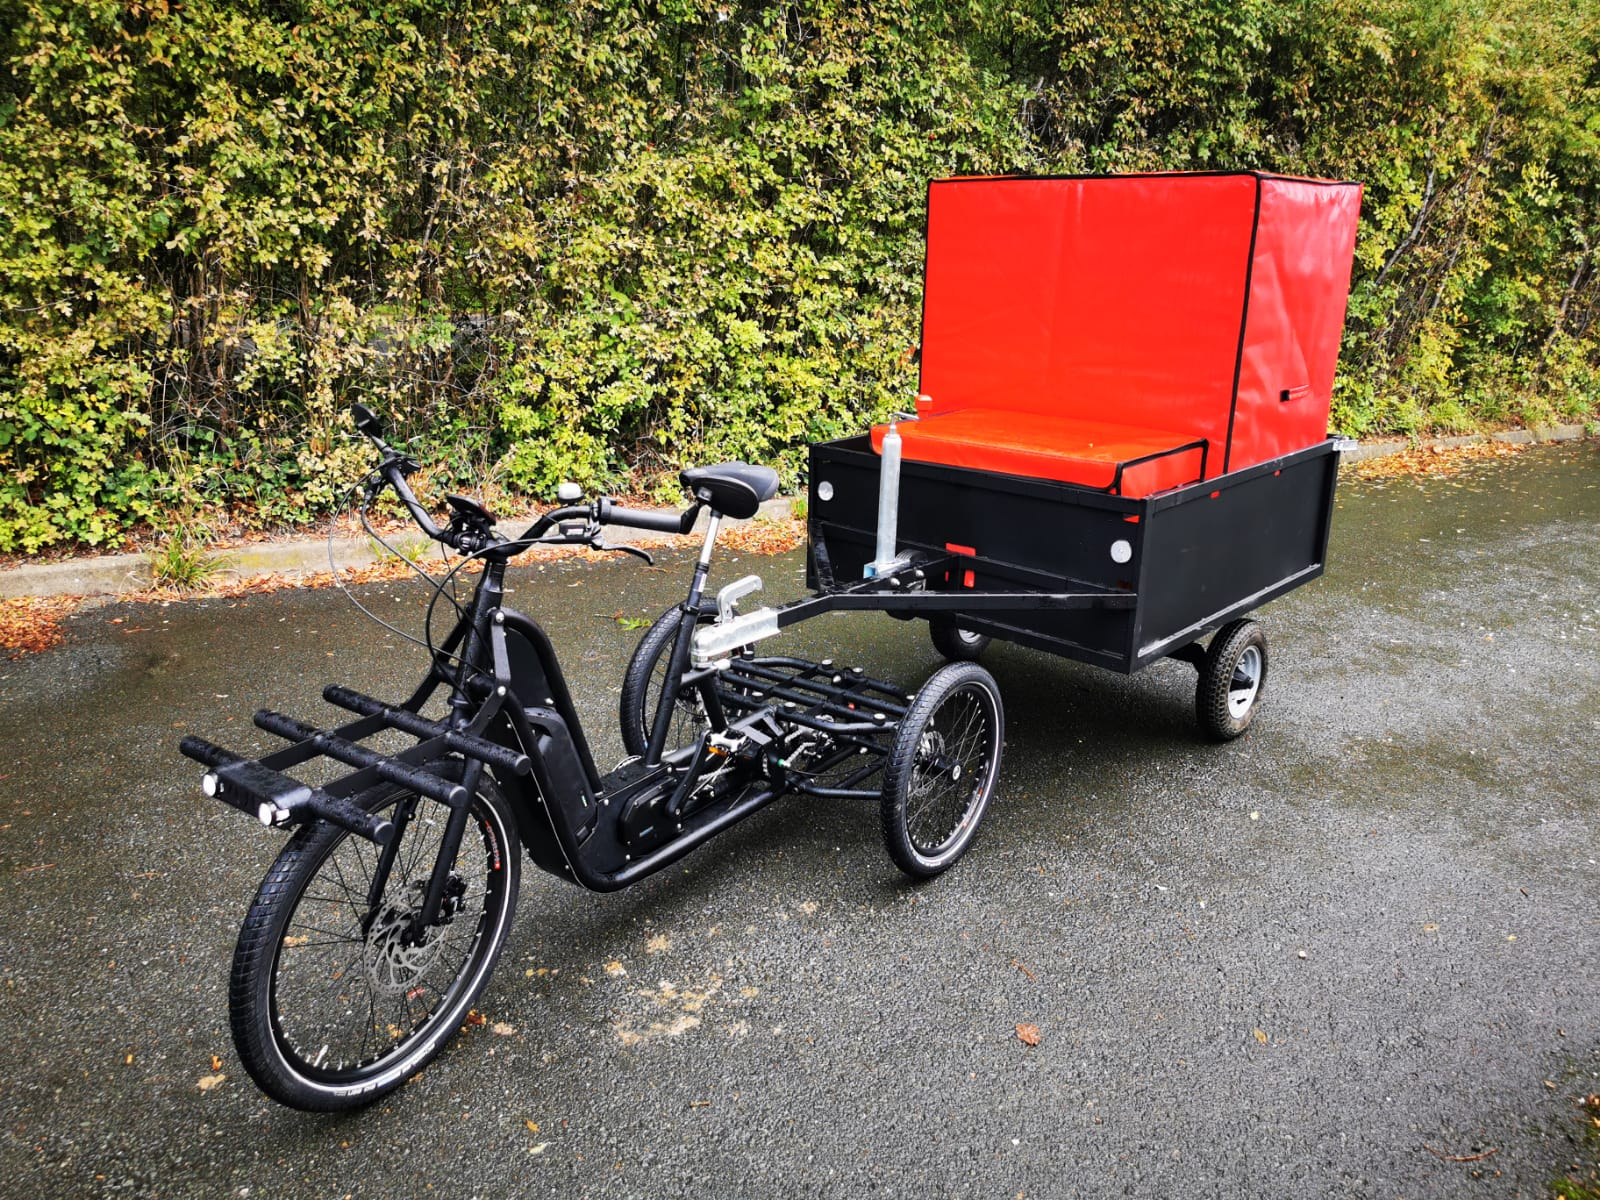 Refrigerated insulated container for bicycle trailer. Soft, ecofriendly and silent delivery of fresh products in the city centre.